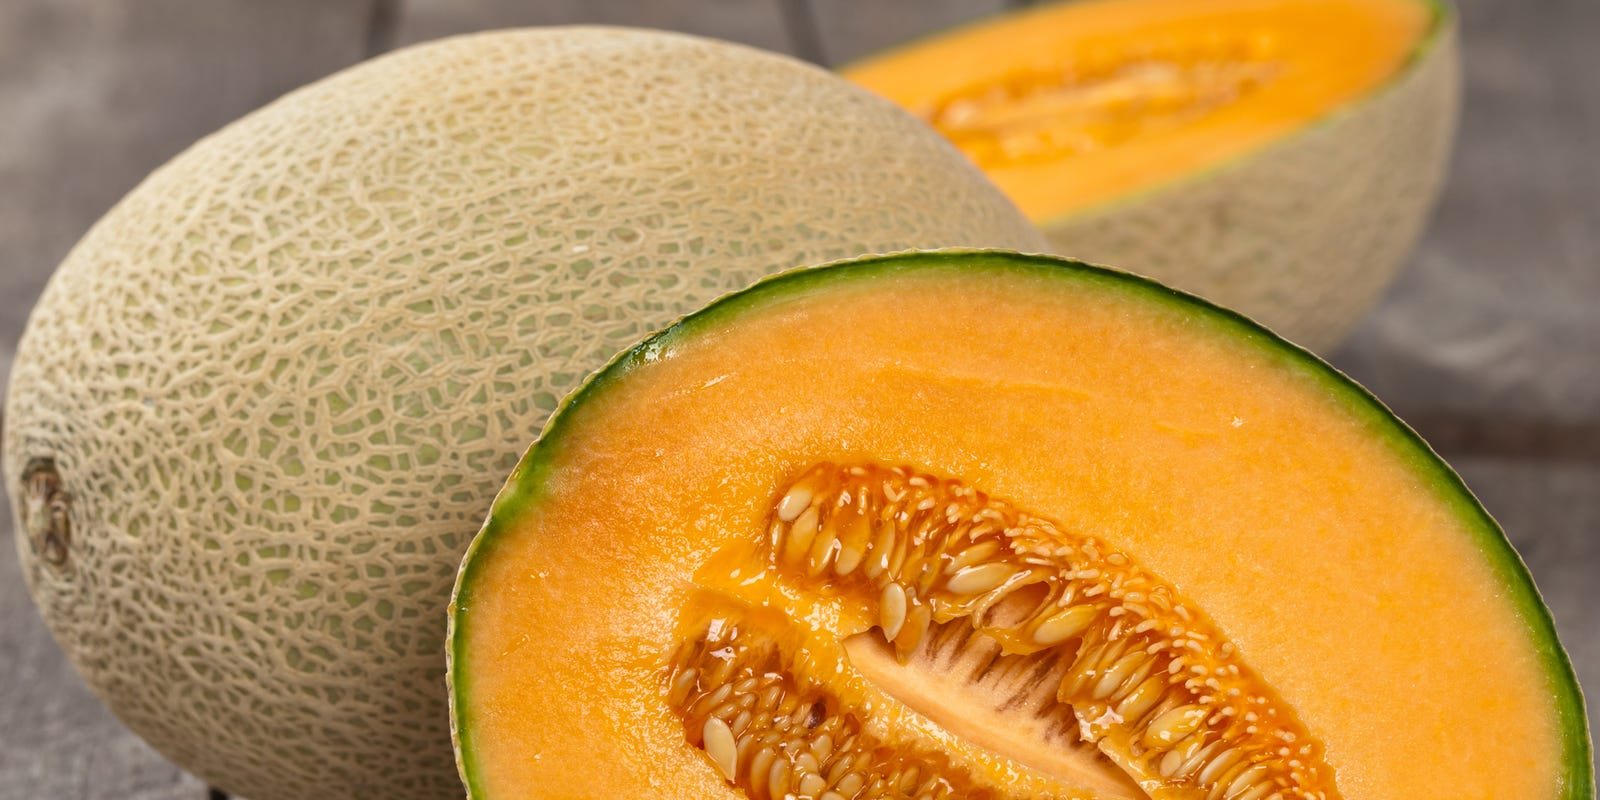 California Cantaloupes Are Fragrant Juicy And Delicious To freeze cantaloupe successfully, start with fresh, ripe melons. california cantaloupes are fragrant